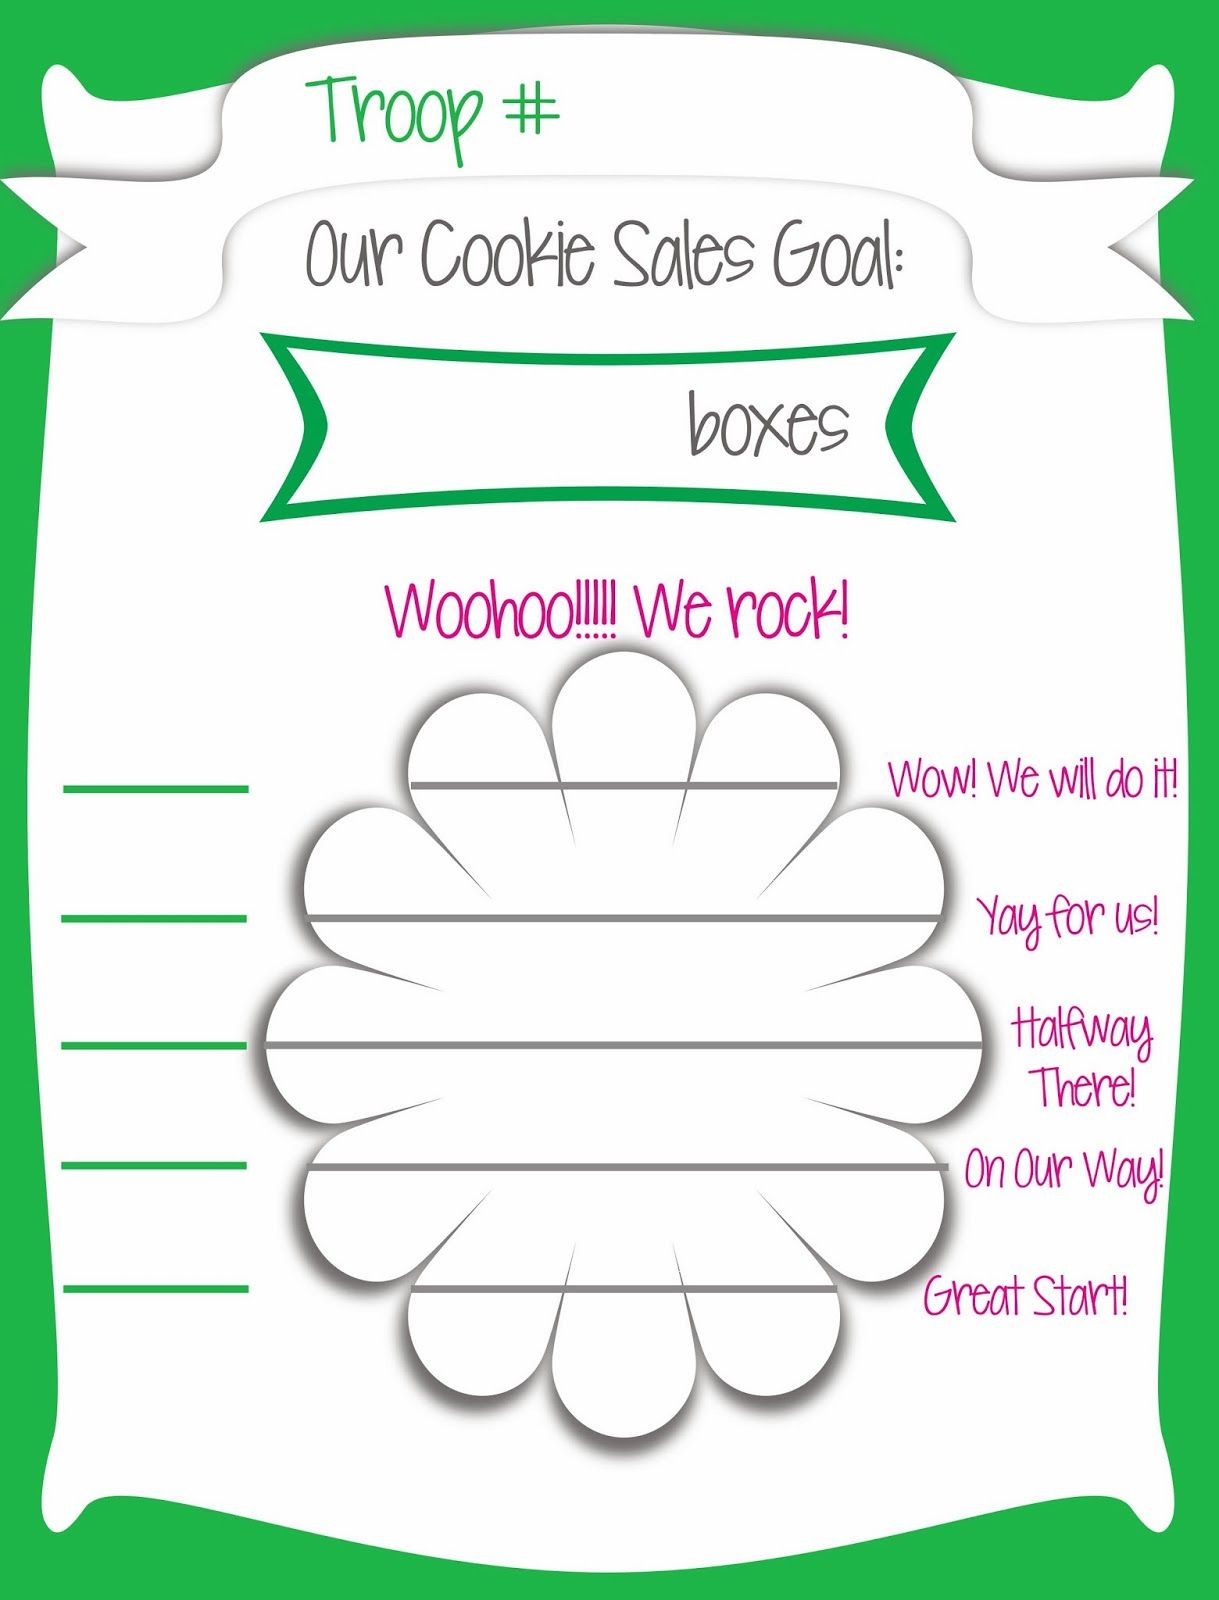 Fashionable Moms Girl Scout Cookie Sales